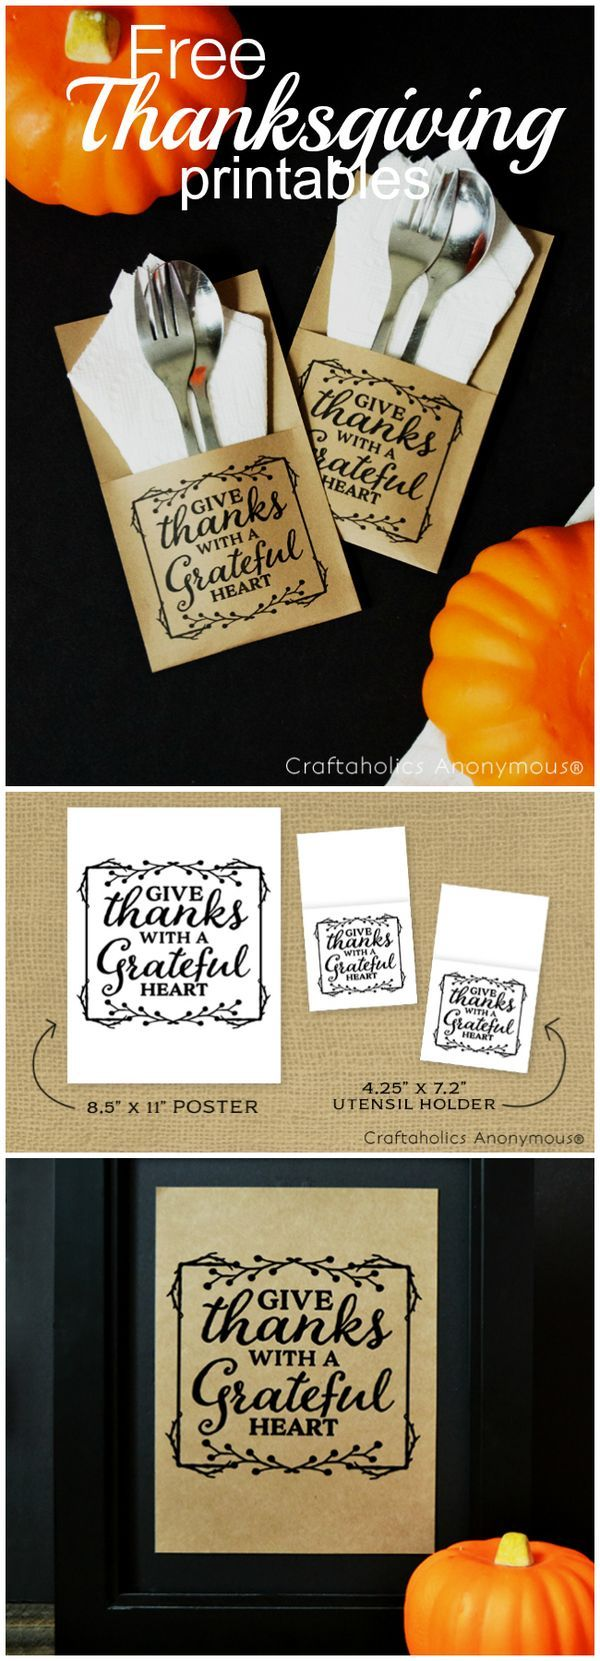 Print on kraft paper for a rustic look!